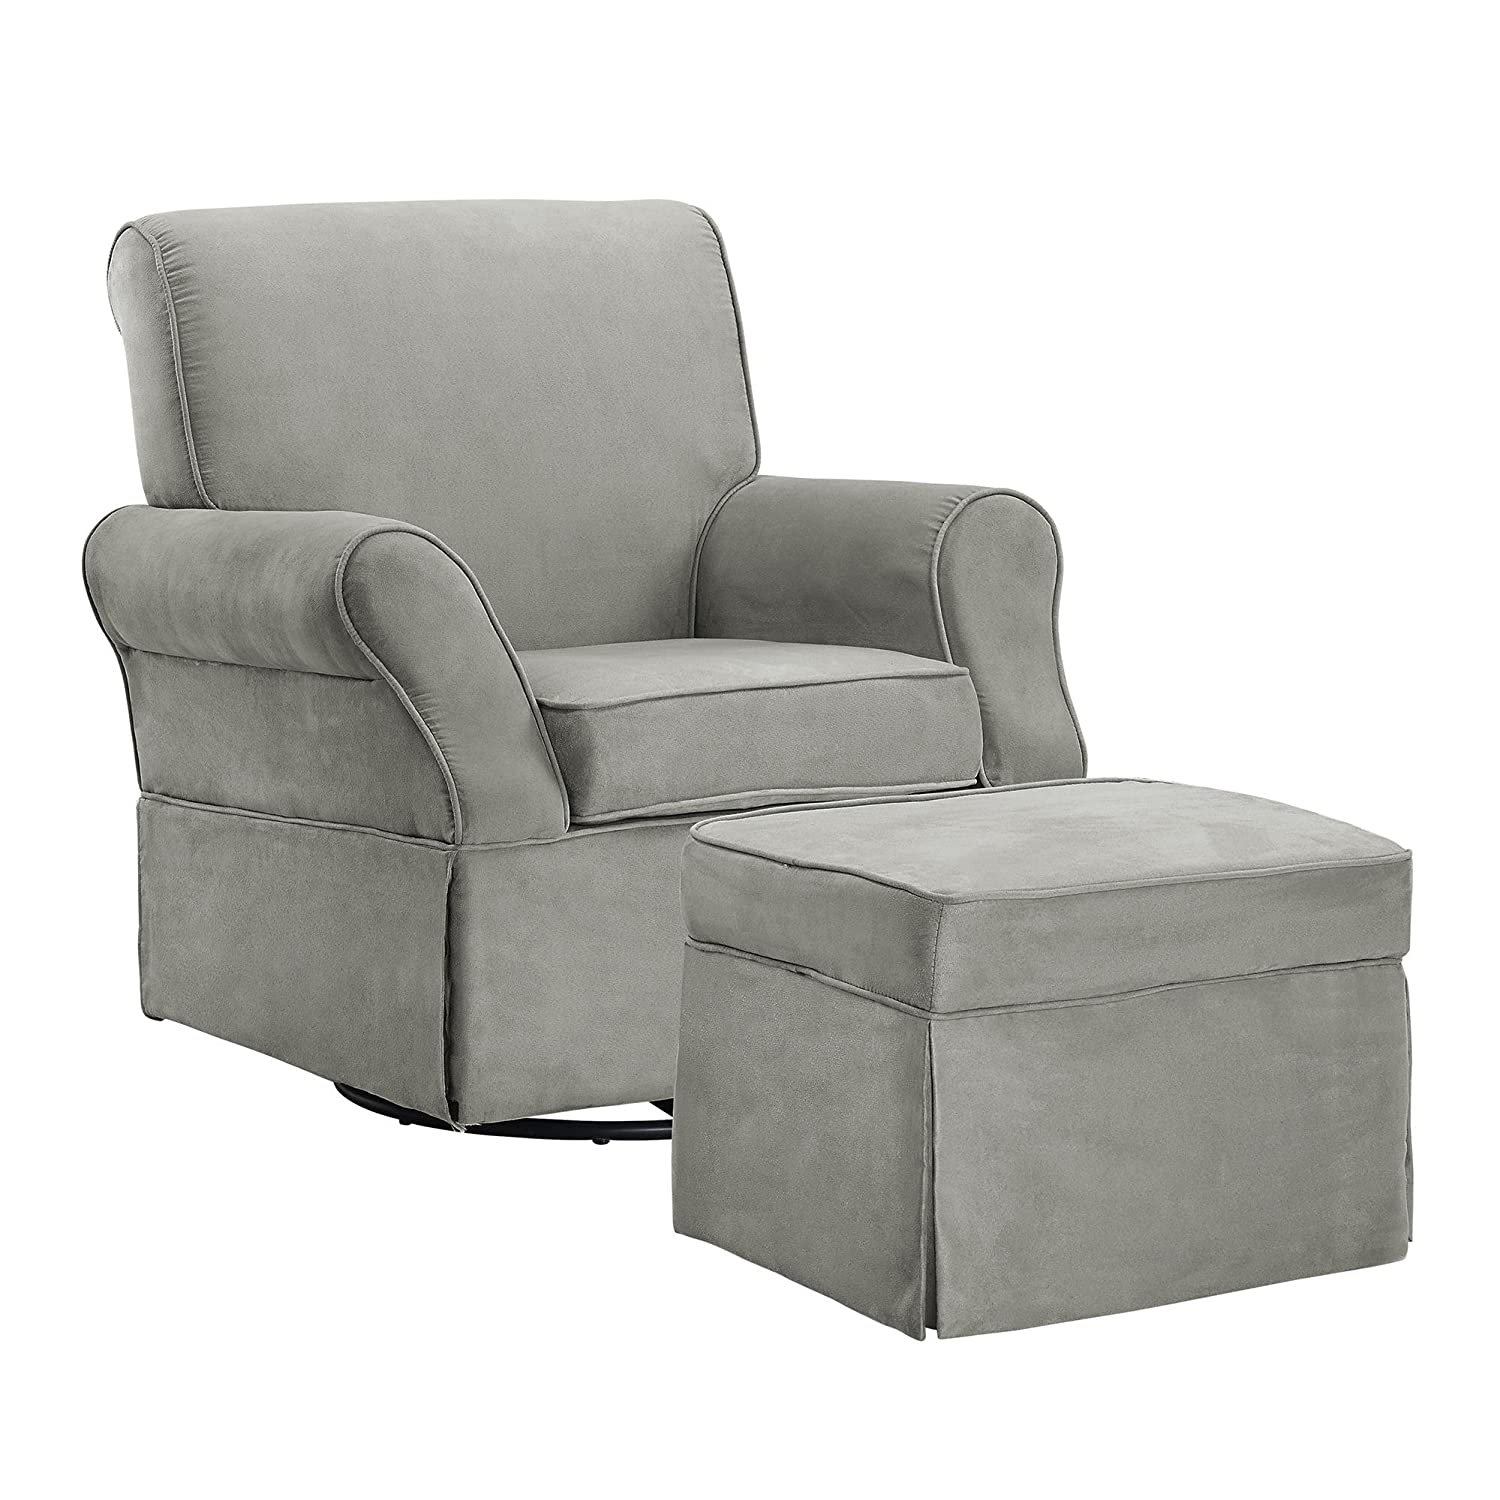 Baby Relax The Kelcie Nursery Swivel Glider Chair and Ottoman Set, Grey Gray